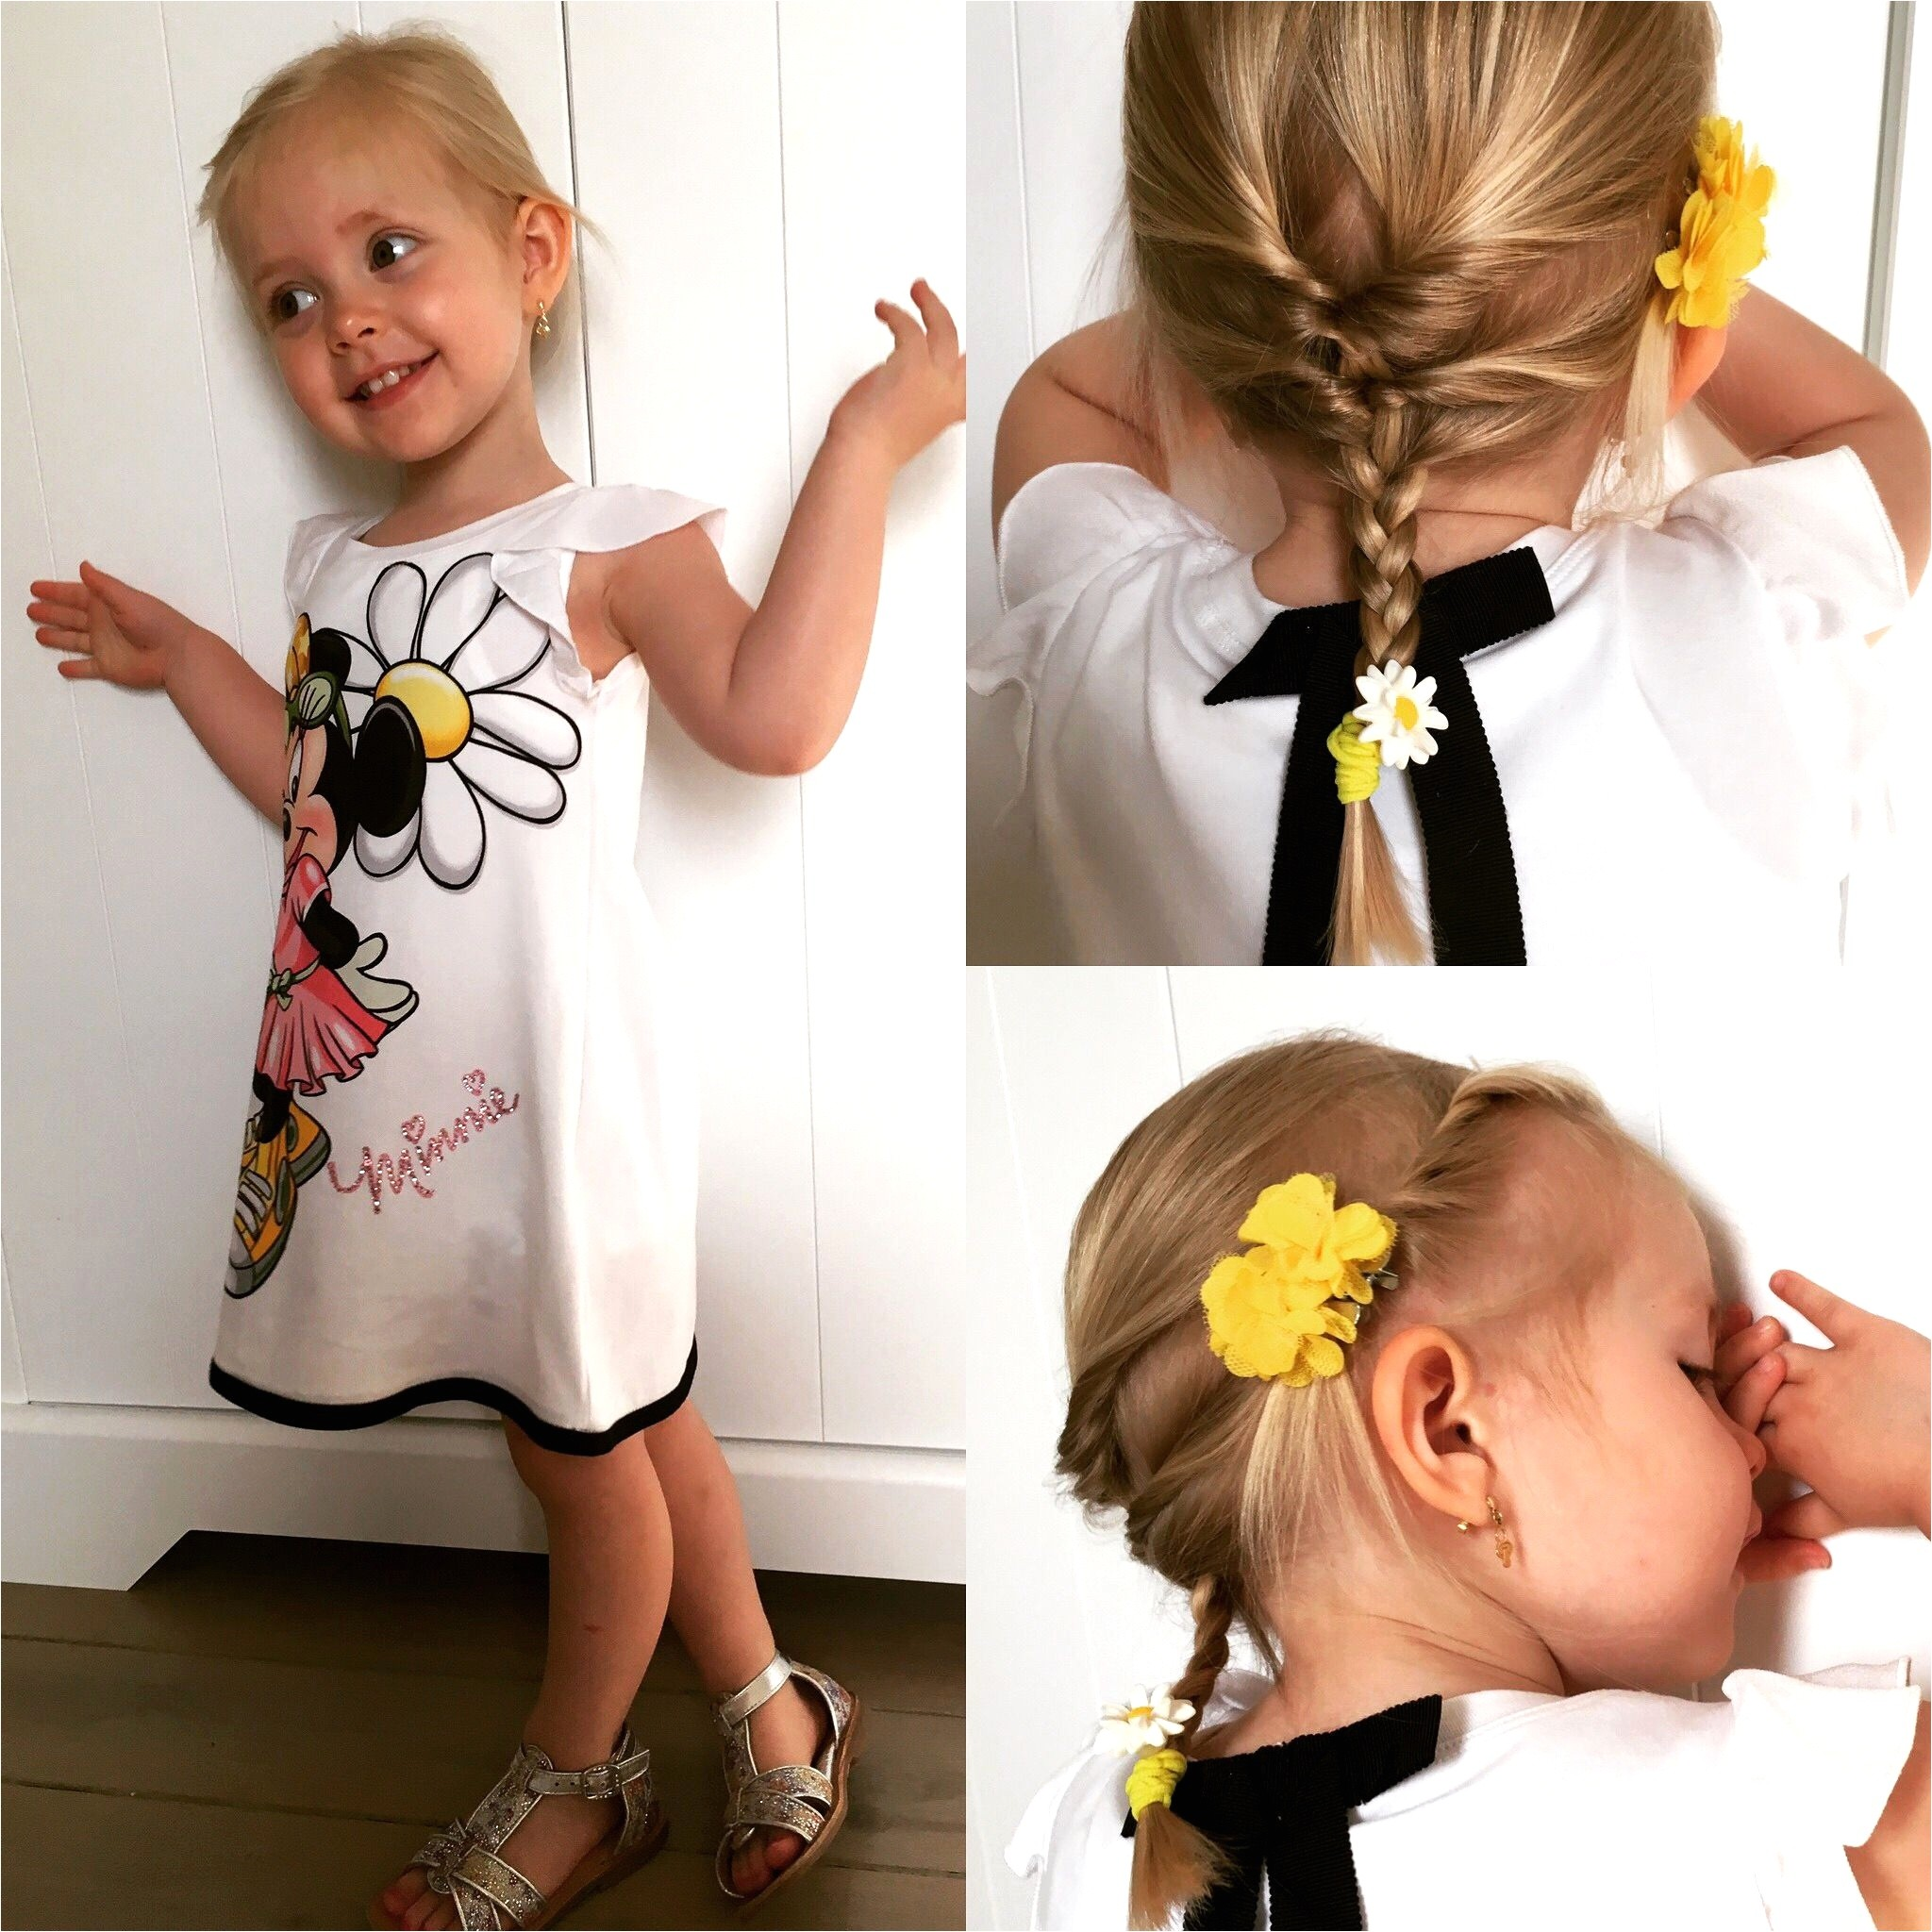 Hairstyles for Mixed toddlers with Curly Hair Interesting 25 Lovely Mixed toddler Girl Hairstyles Regrowhairproducts